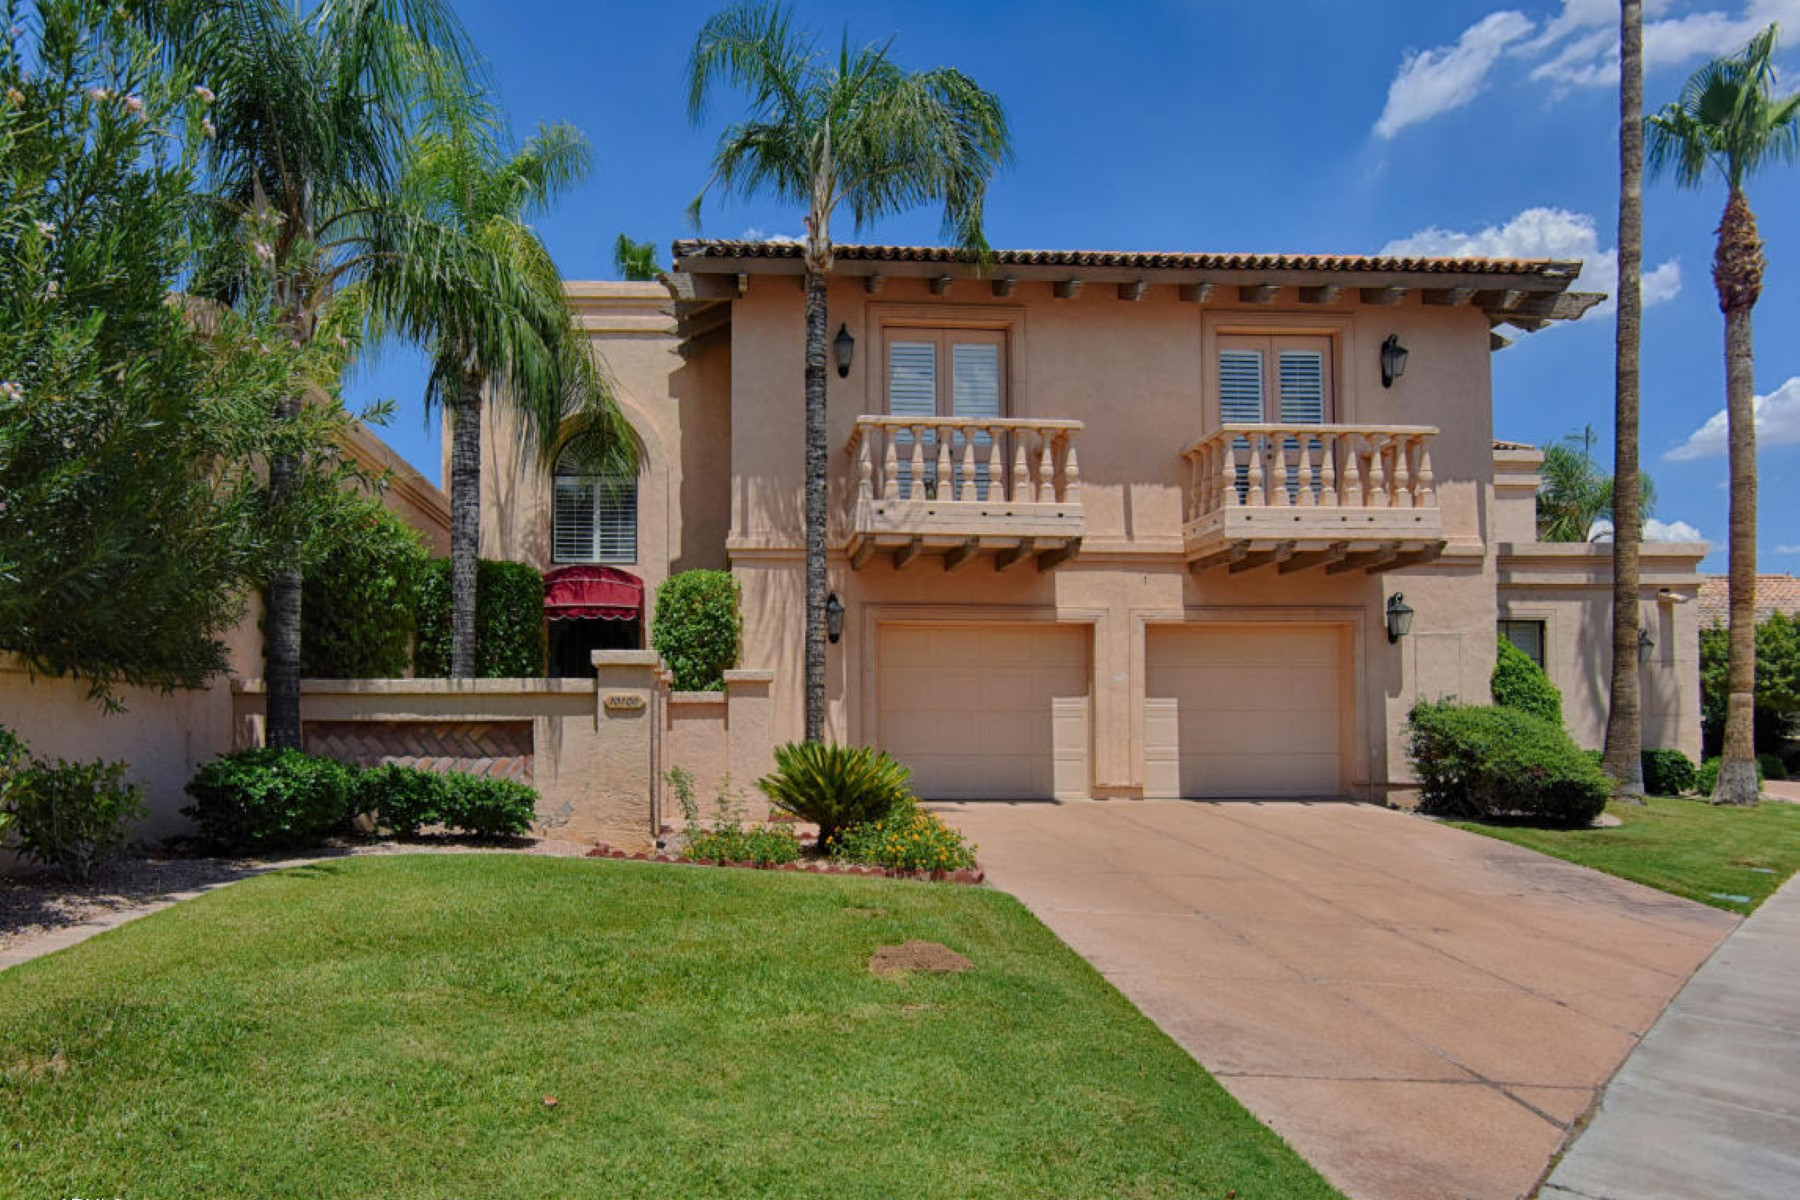 Townhouse for Sale at Amazing opportunity for this fabulous waterfront home 10106 E Topaz Dr Scottsdale, Arizona, 85258 United States